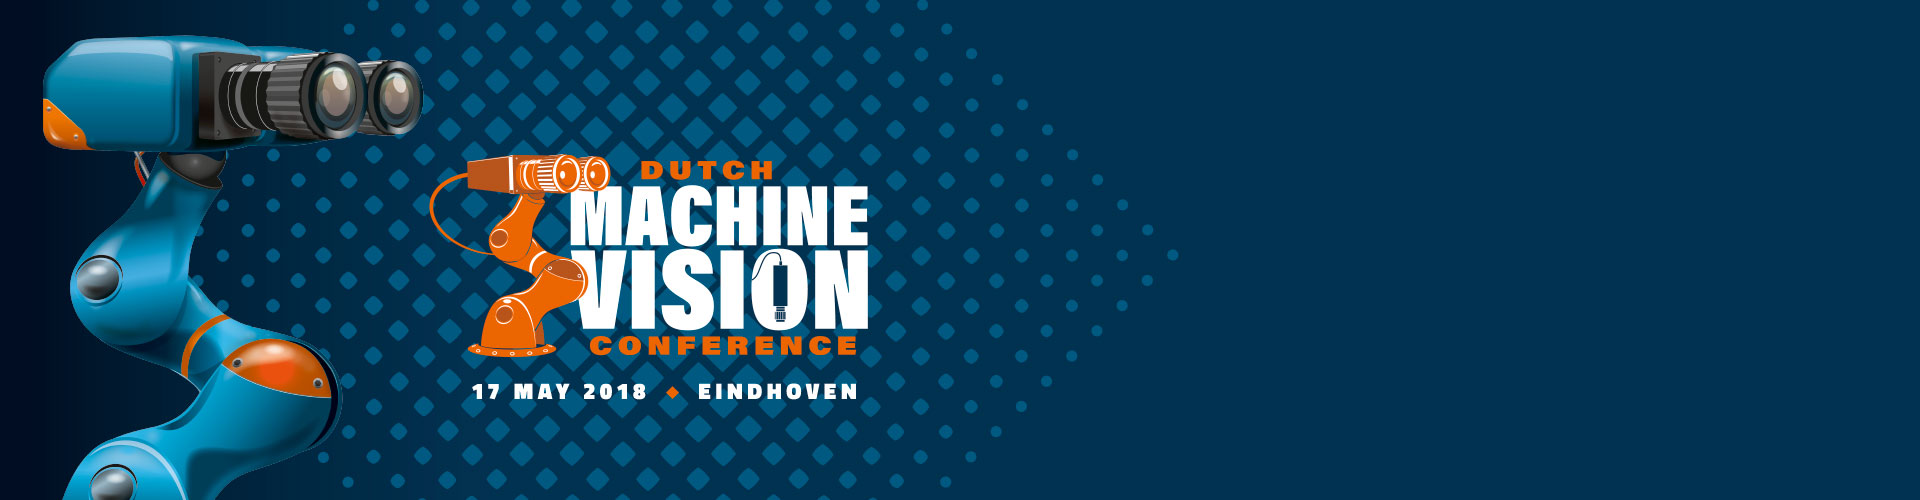 header dutch machine vision conference 2018